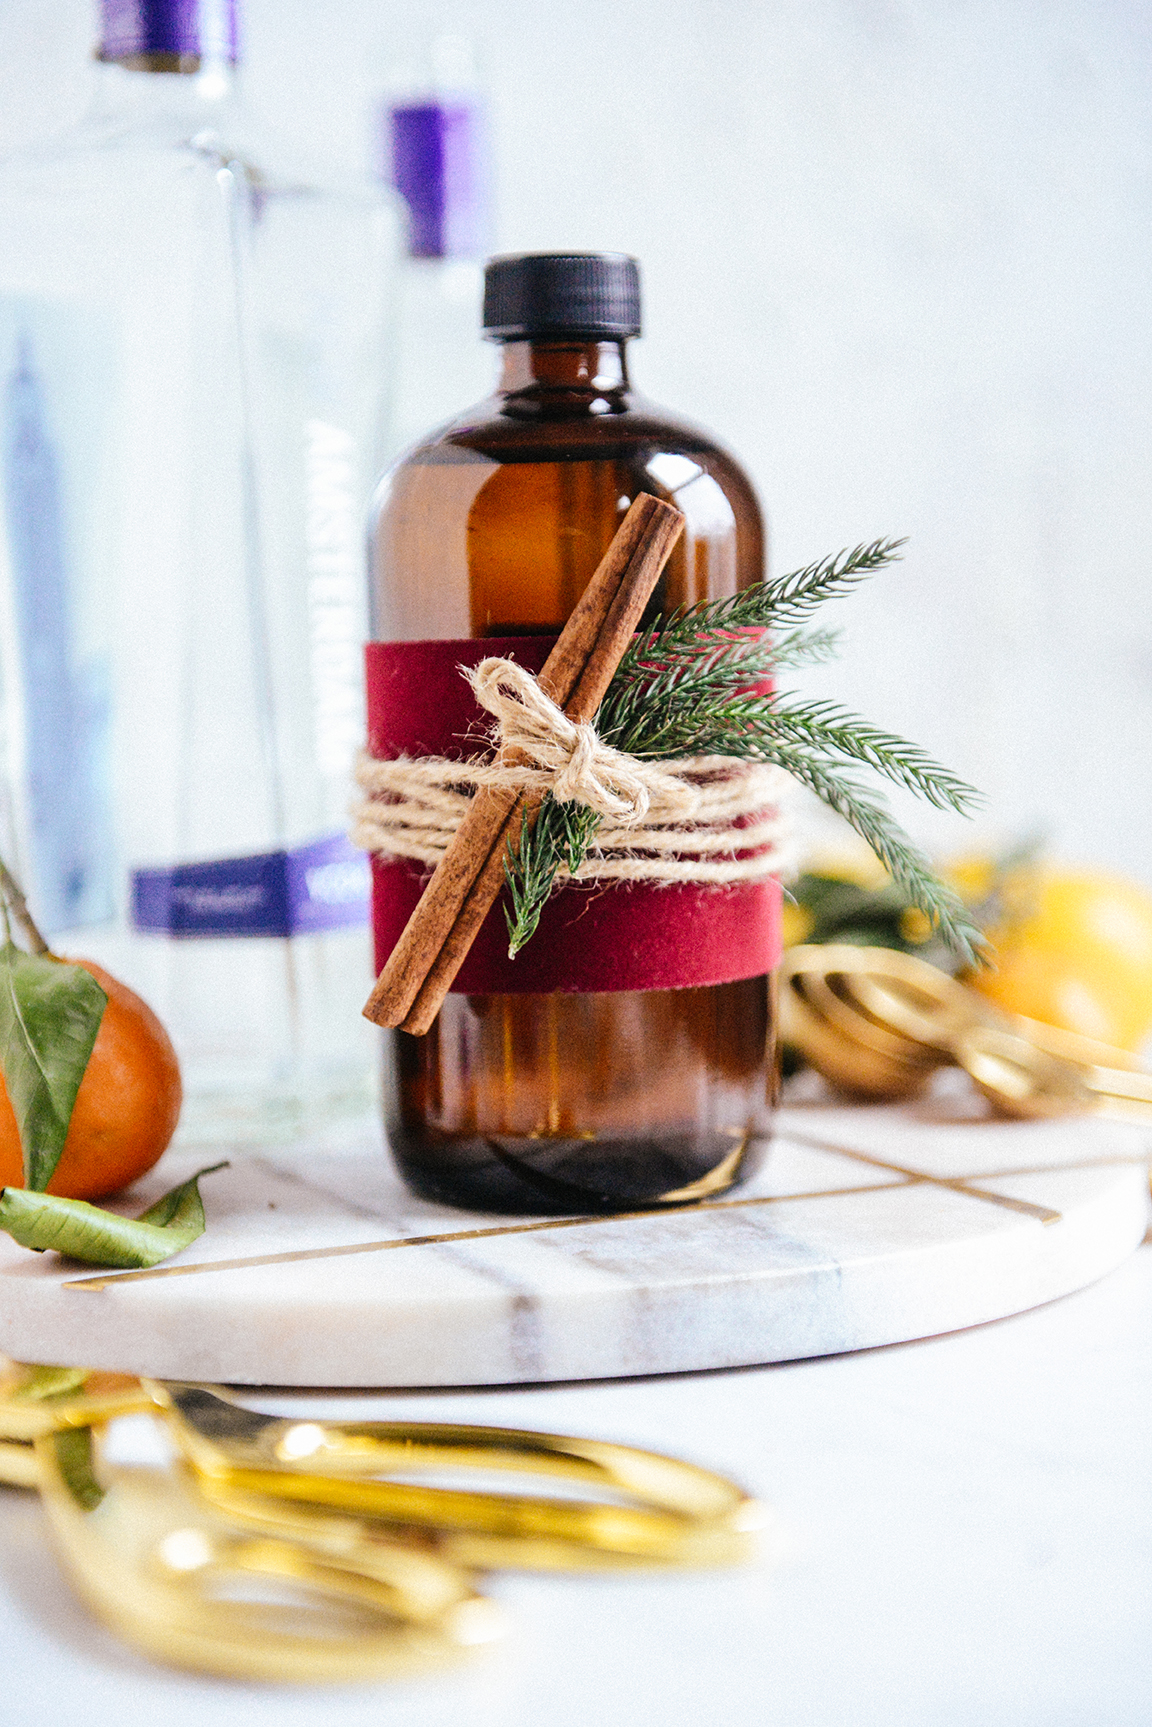 Homemade Bitters: A DIY Holiday Gift for Cocktail Connoisseurs